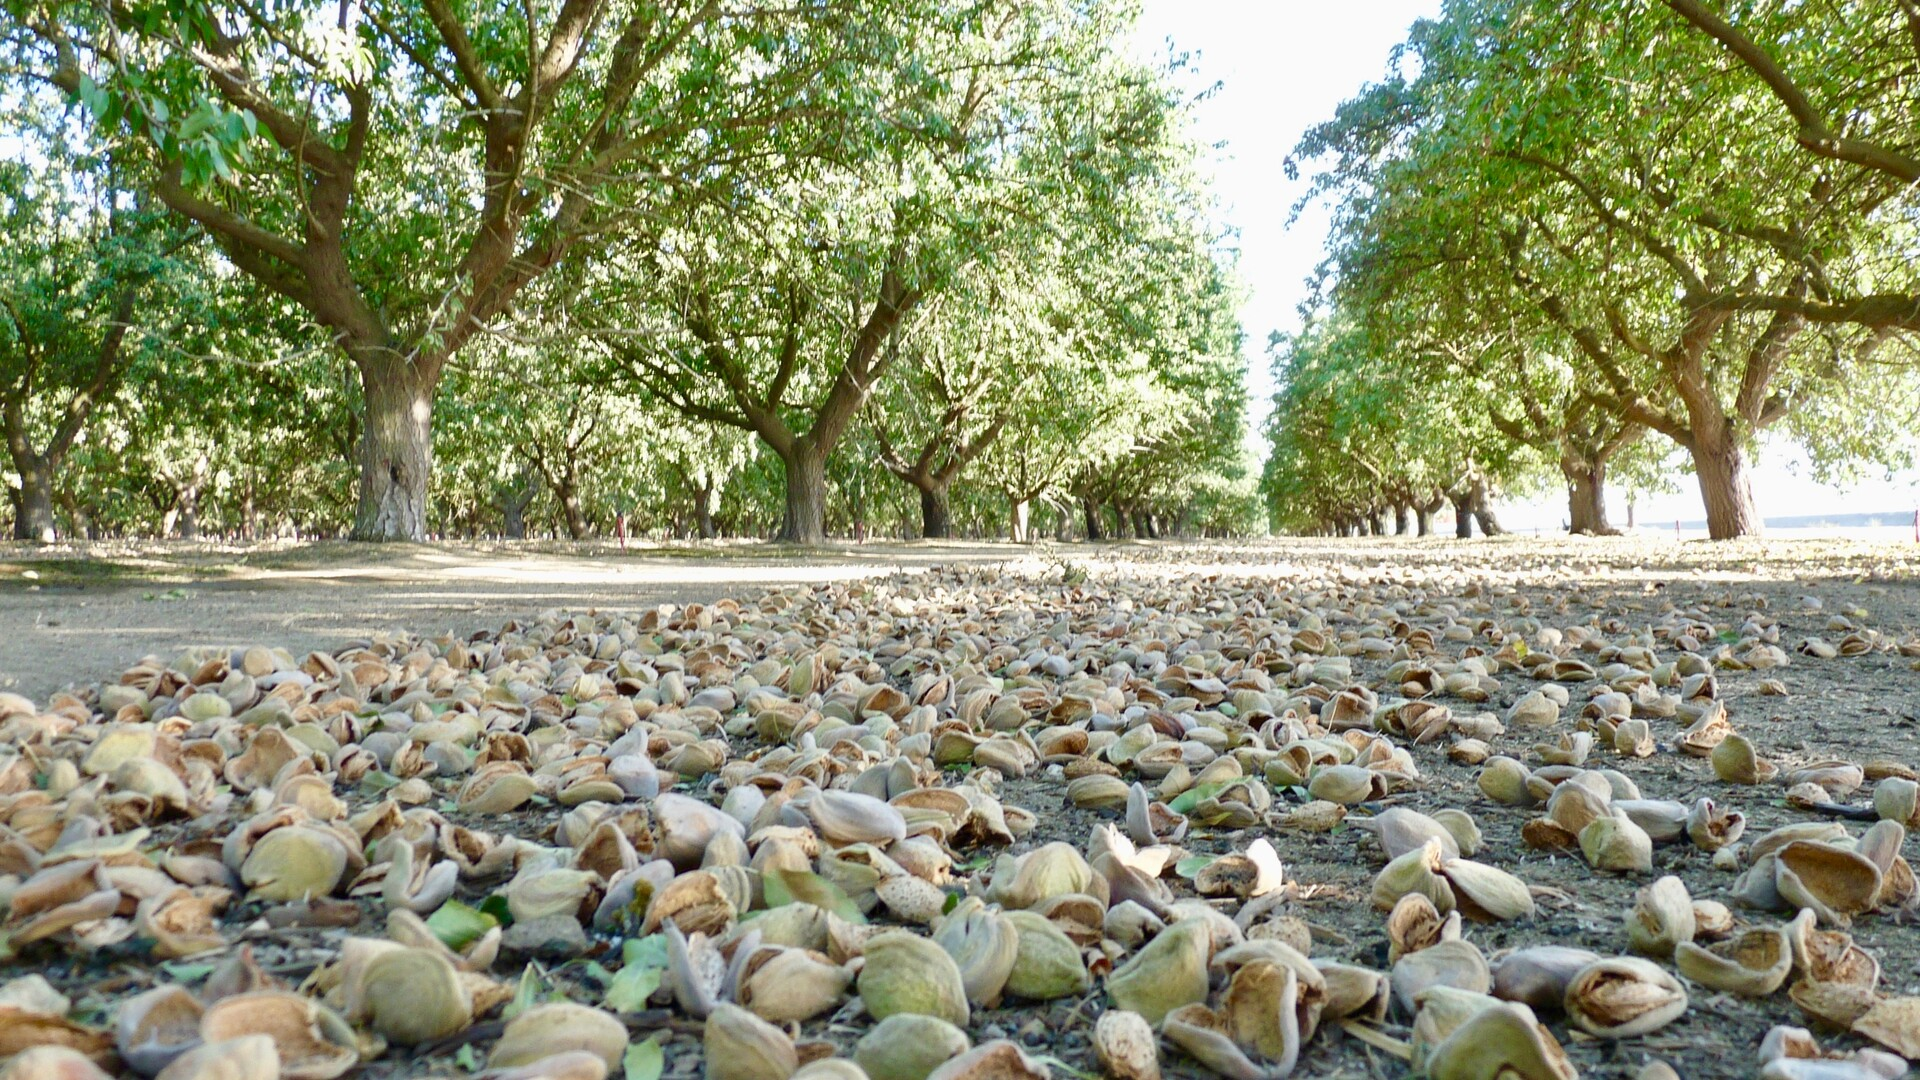 A Pest Control Advisor Talks About the Current Almond Harvest